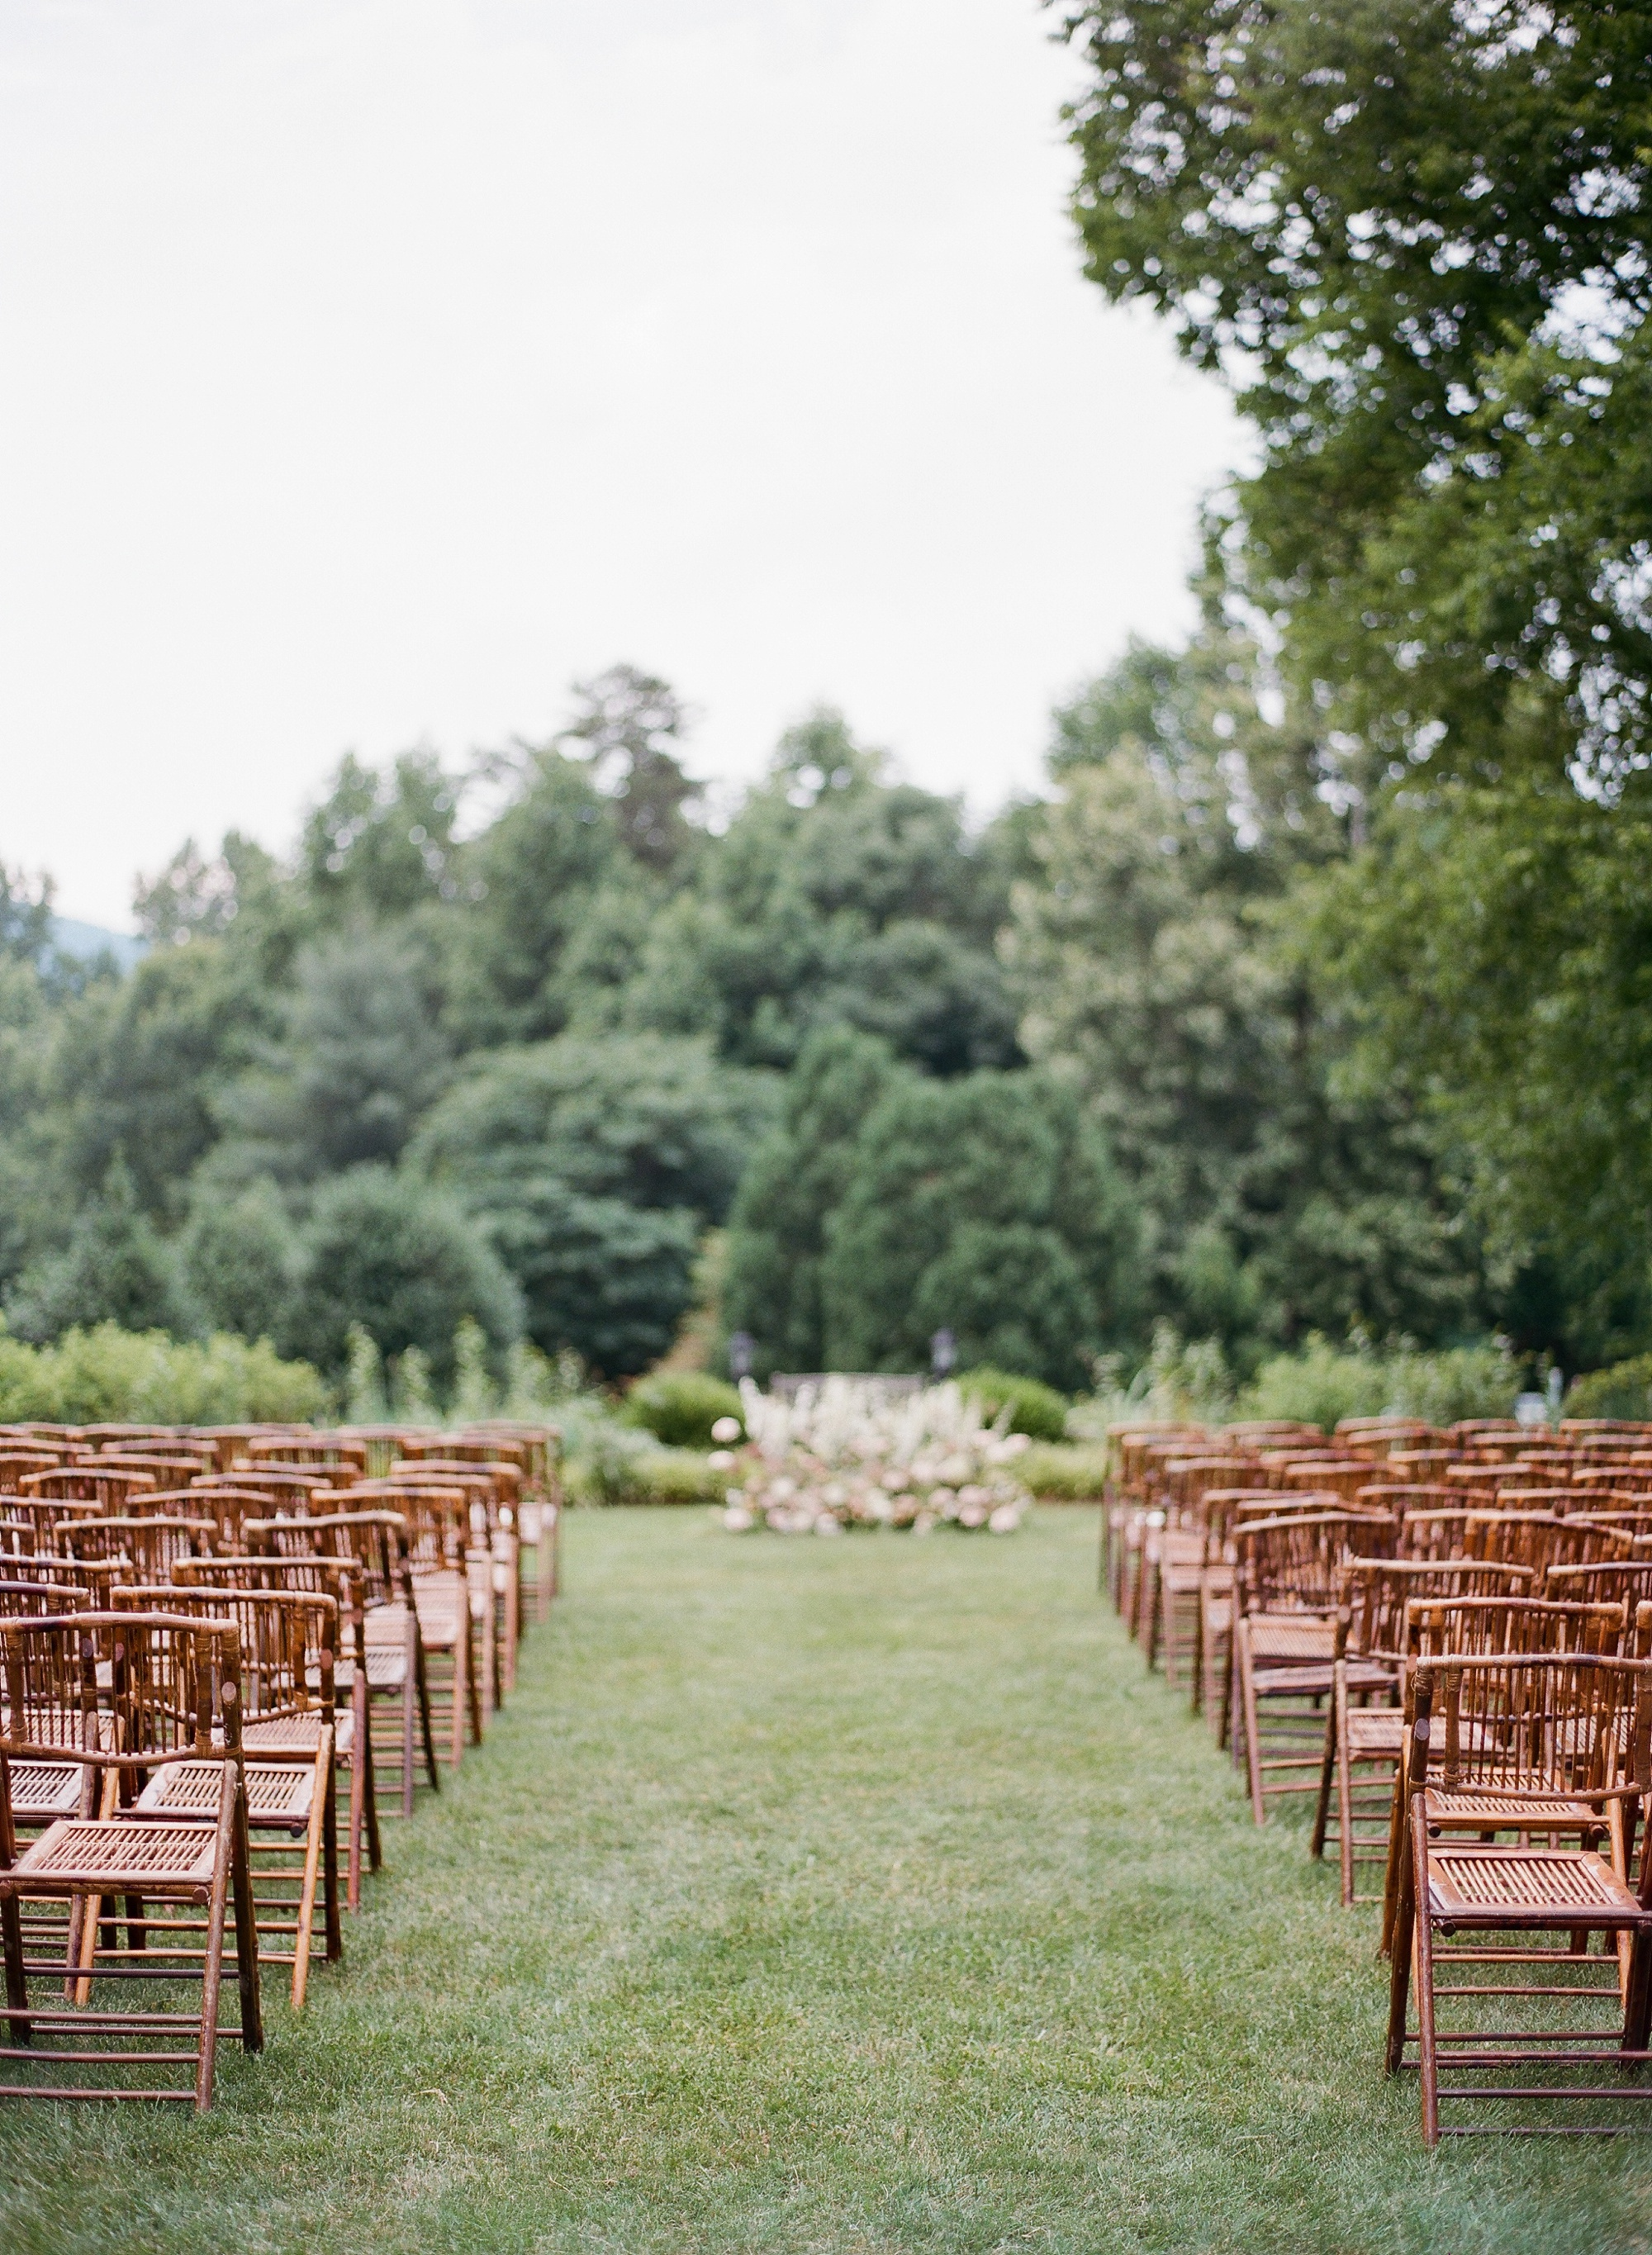 elisa-bricker-charlottesville-virginia-wedding-photographer-clifton-summer012.jpg